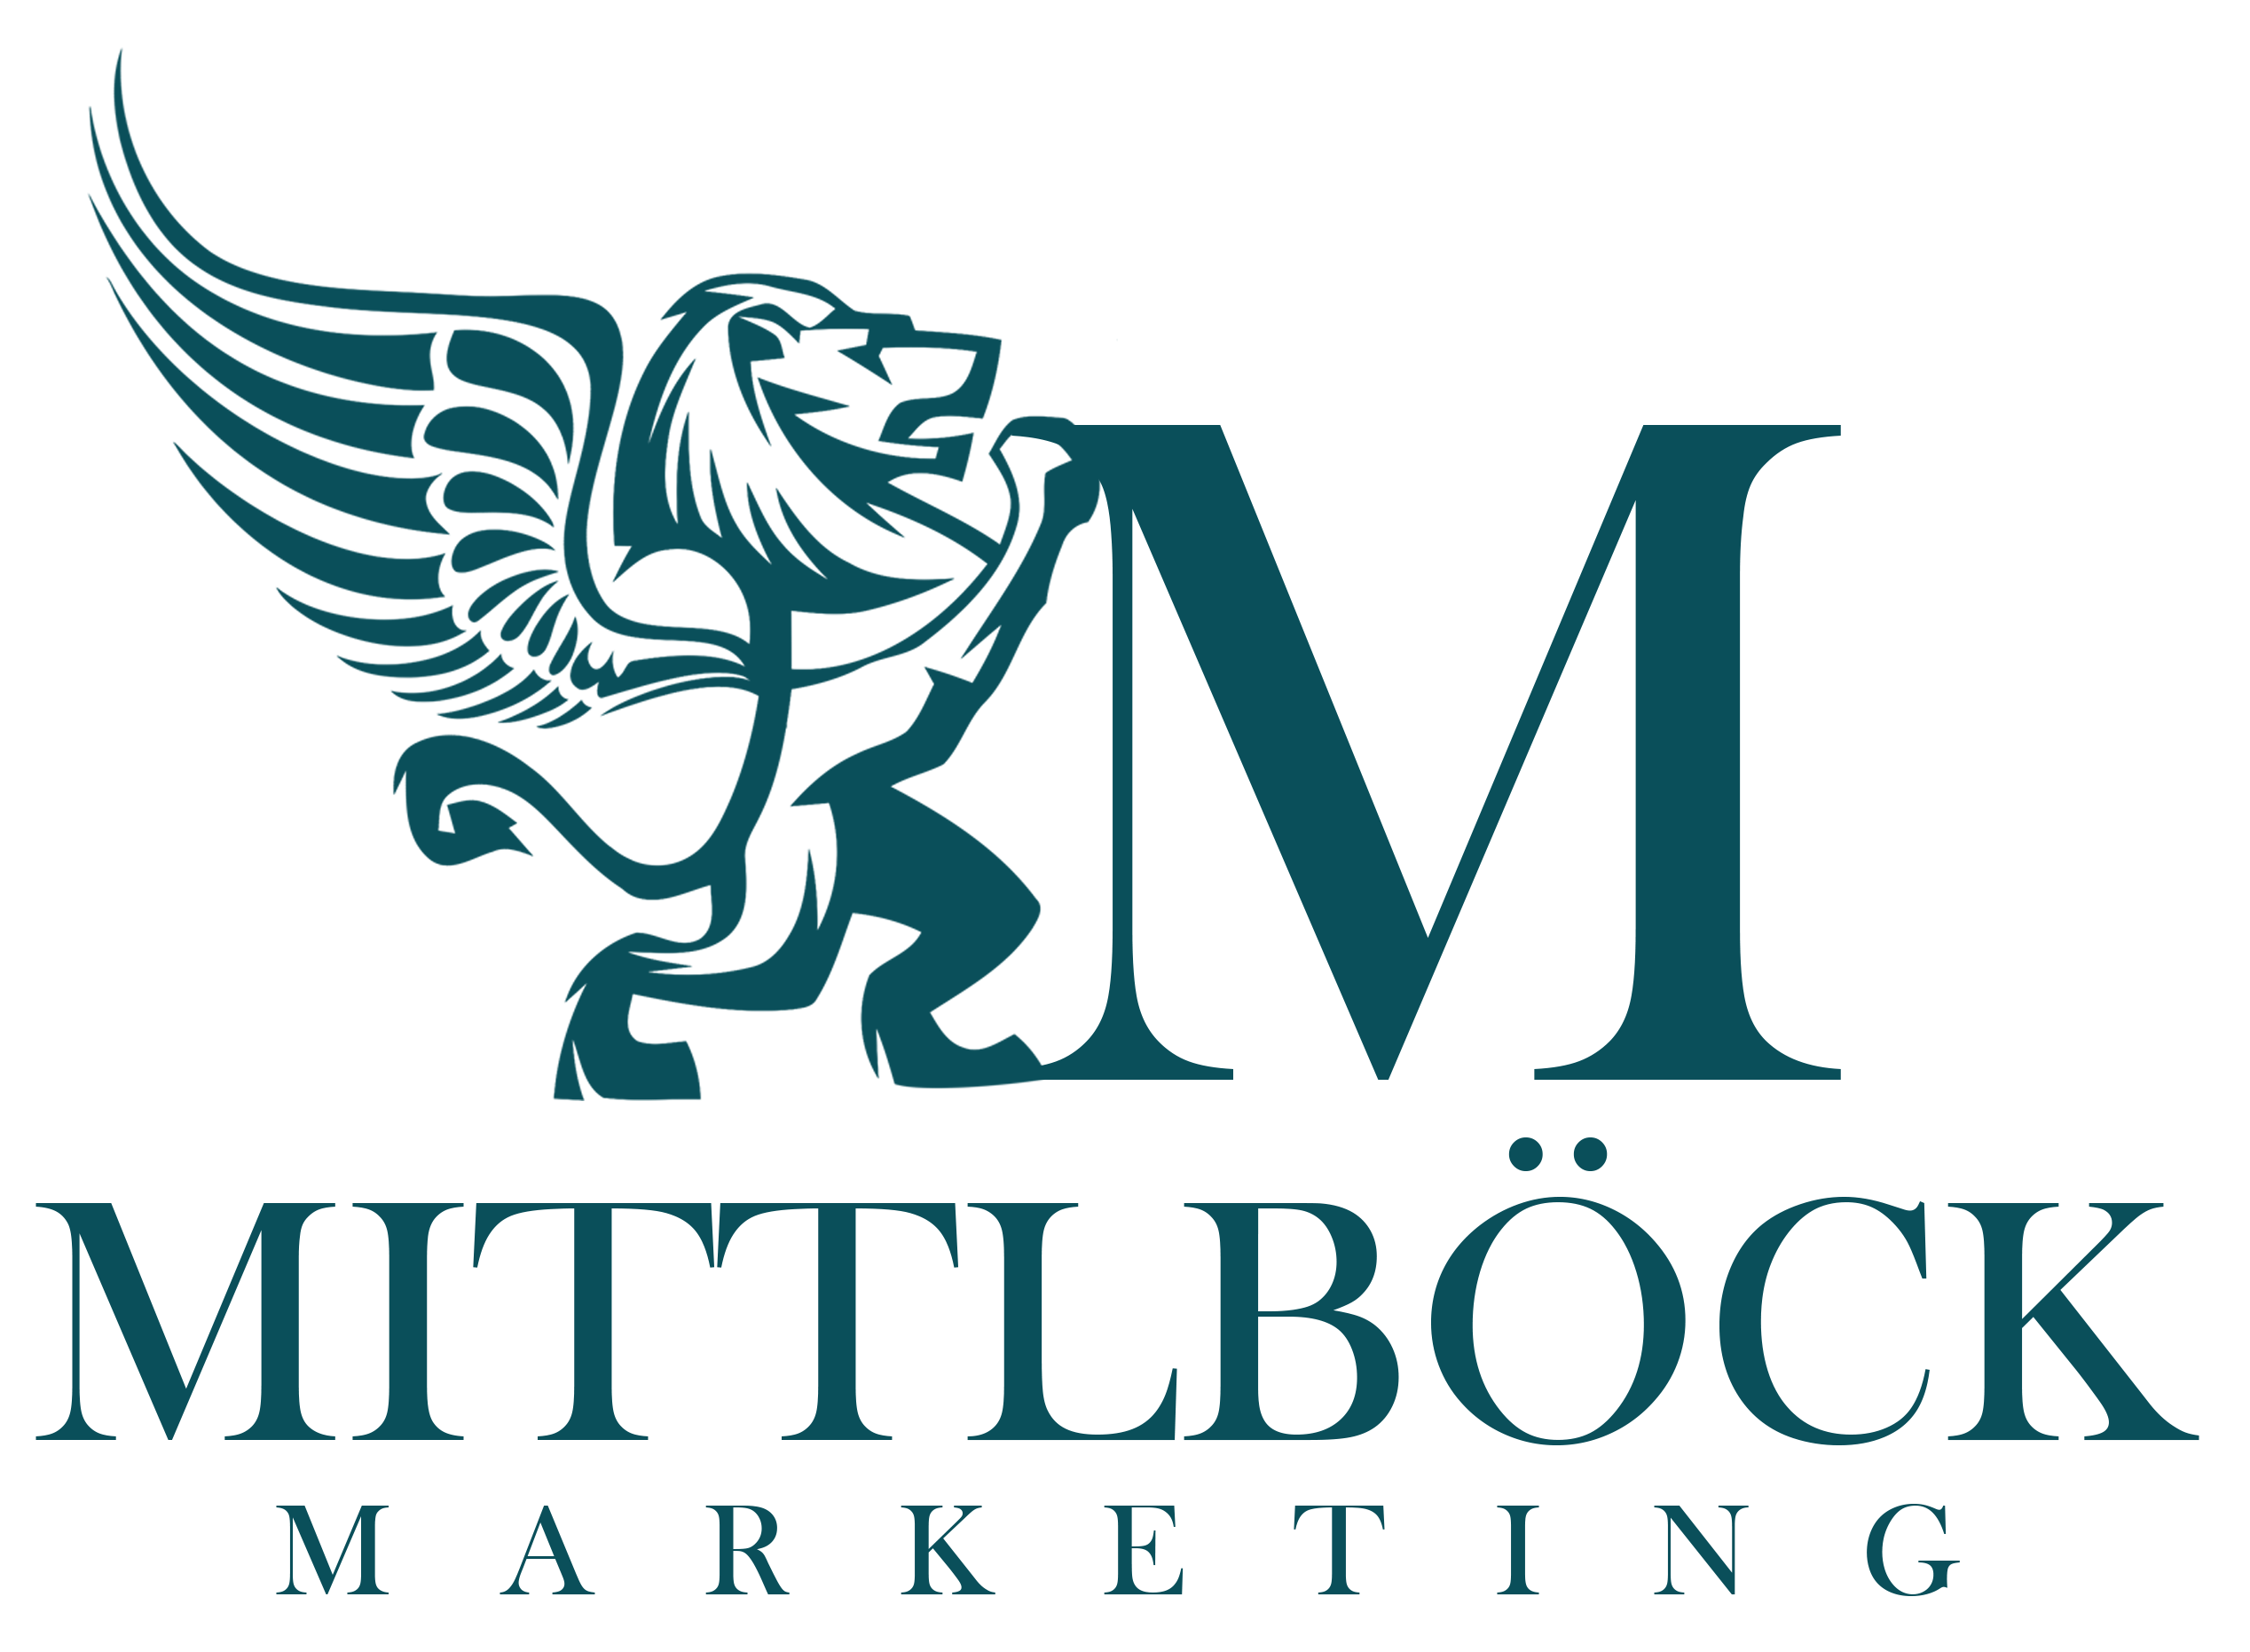 Mittlboeck Marketing